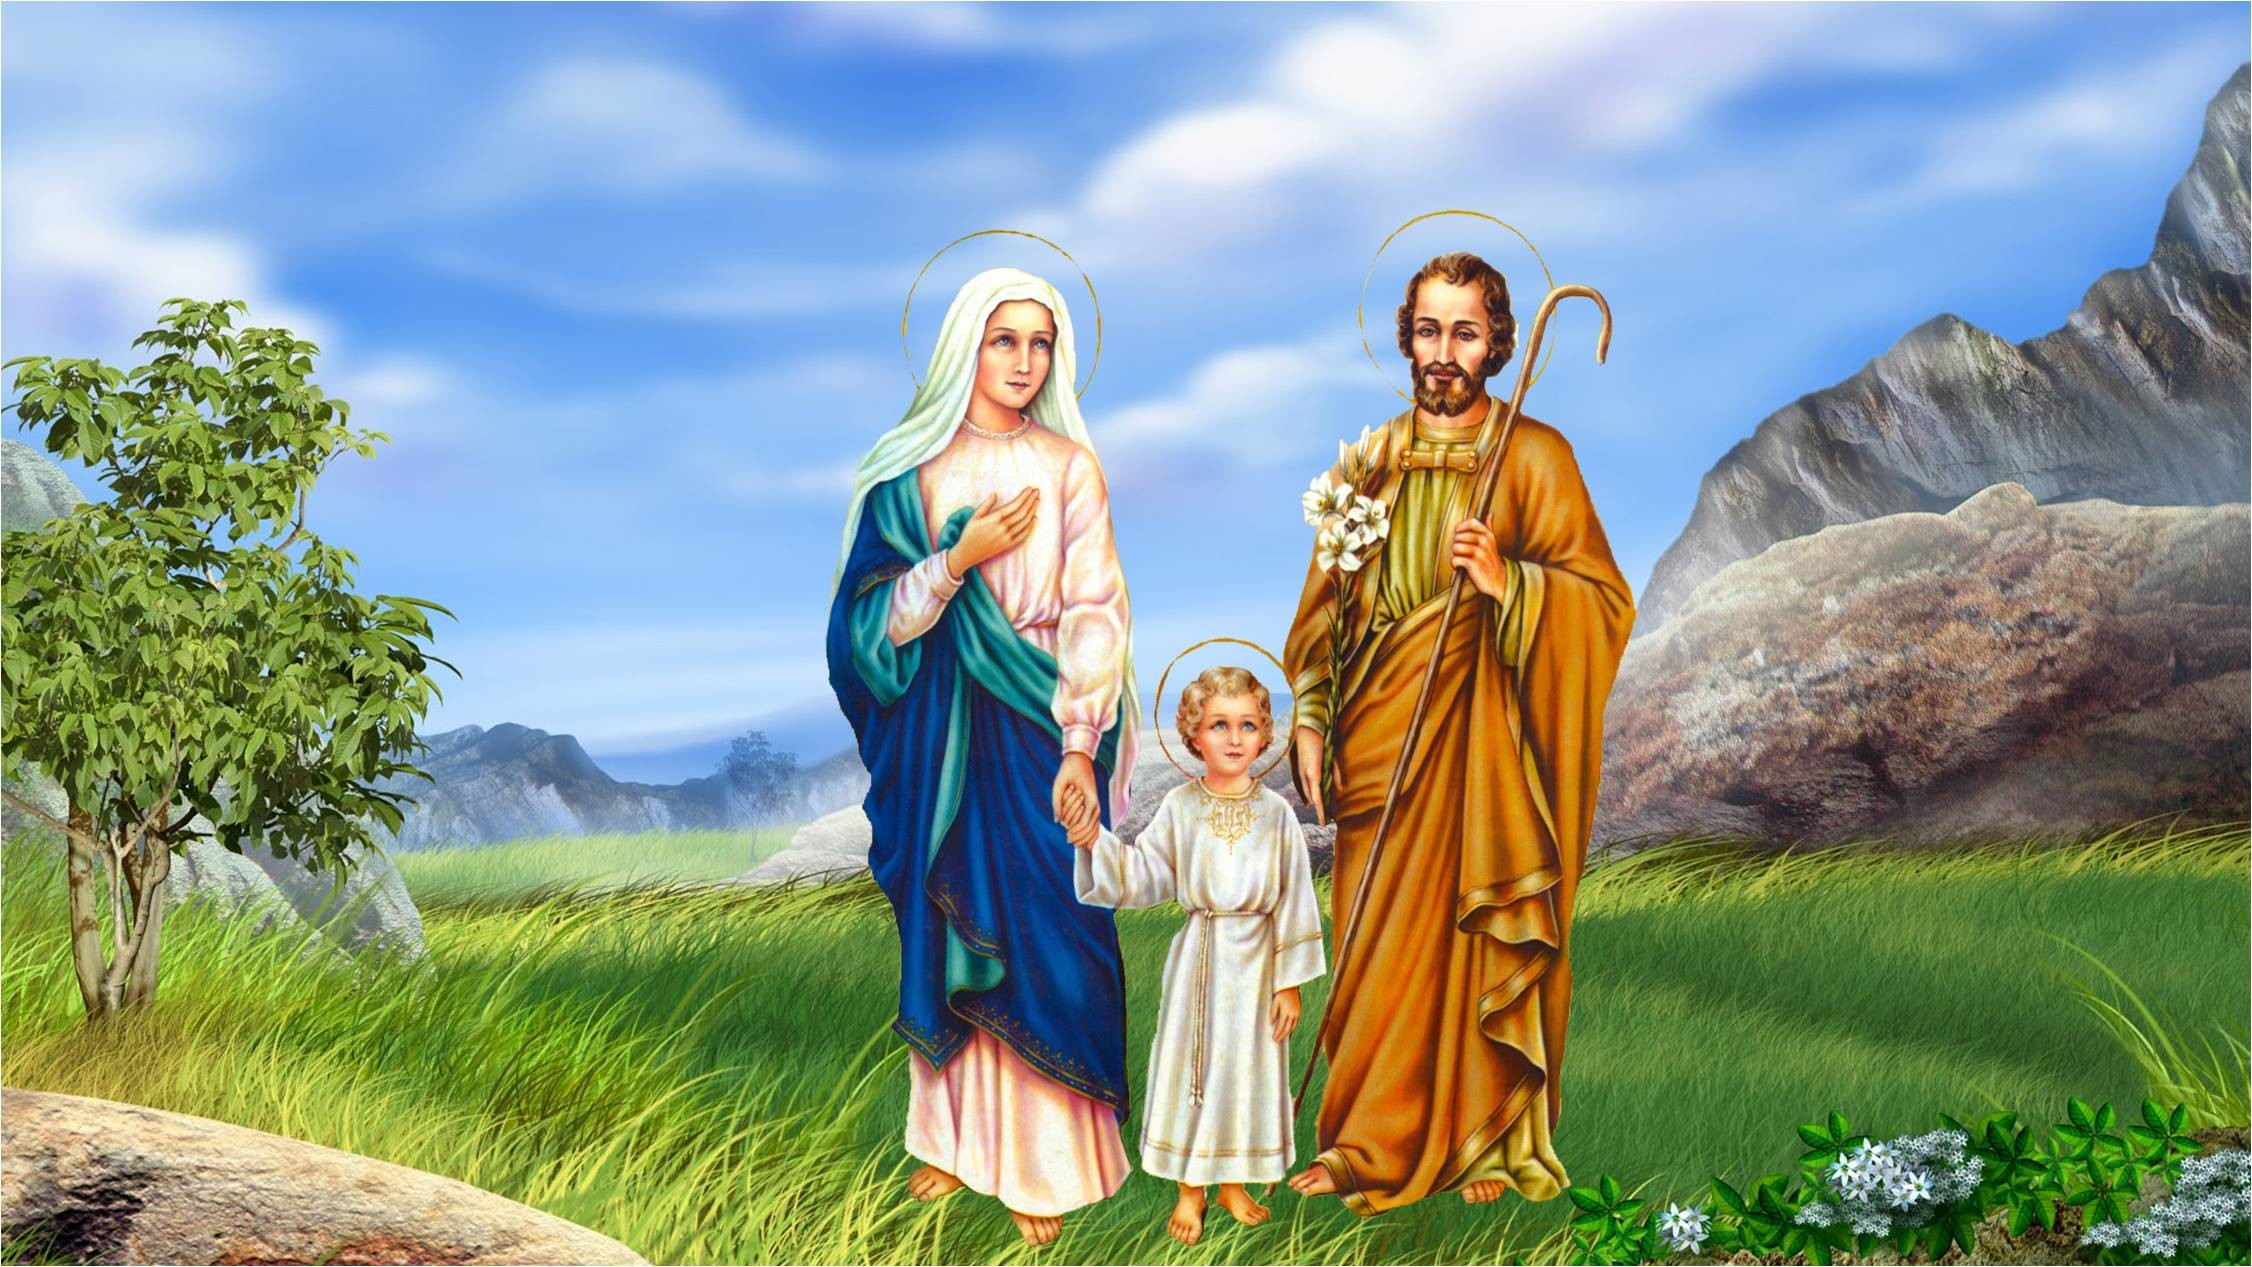 Holy Family Wallpapers 44 Images